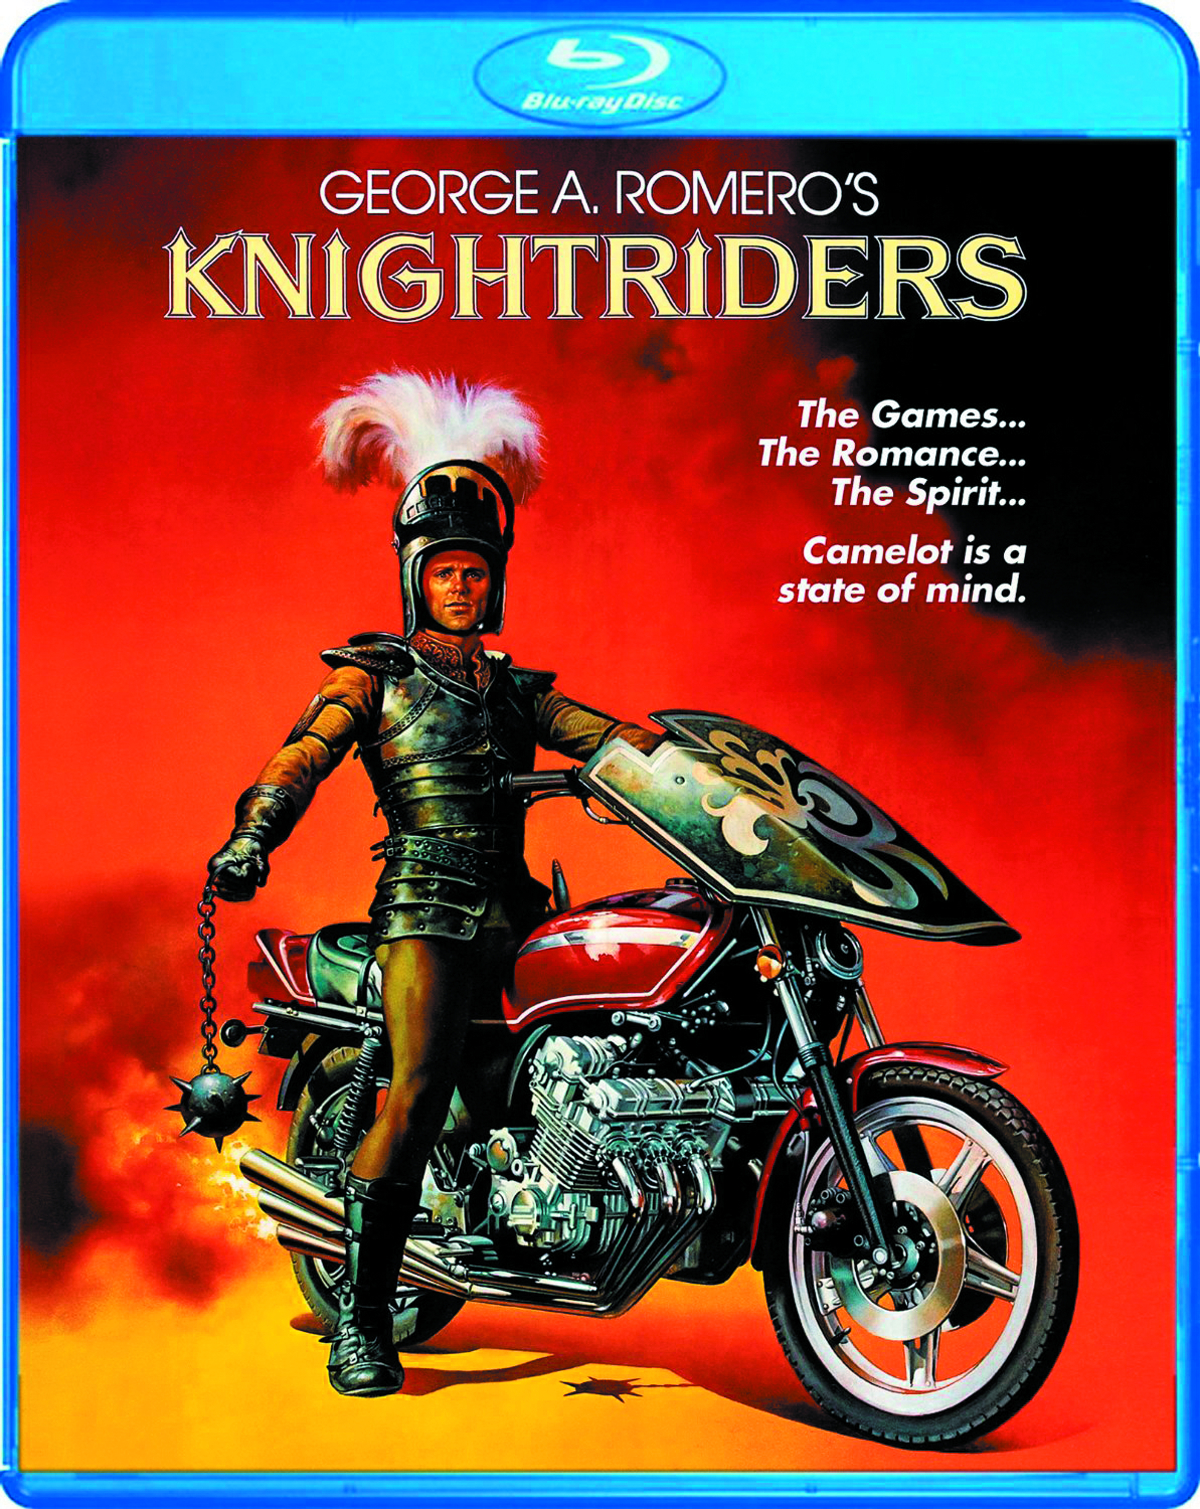 KNIGHTRIDERS BD